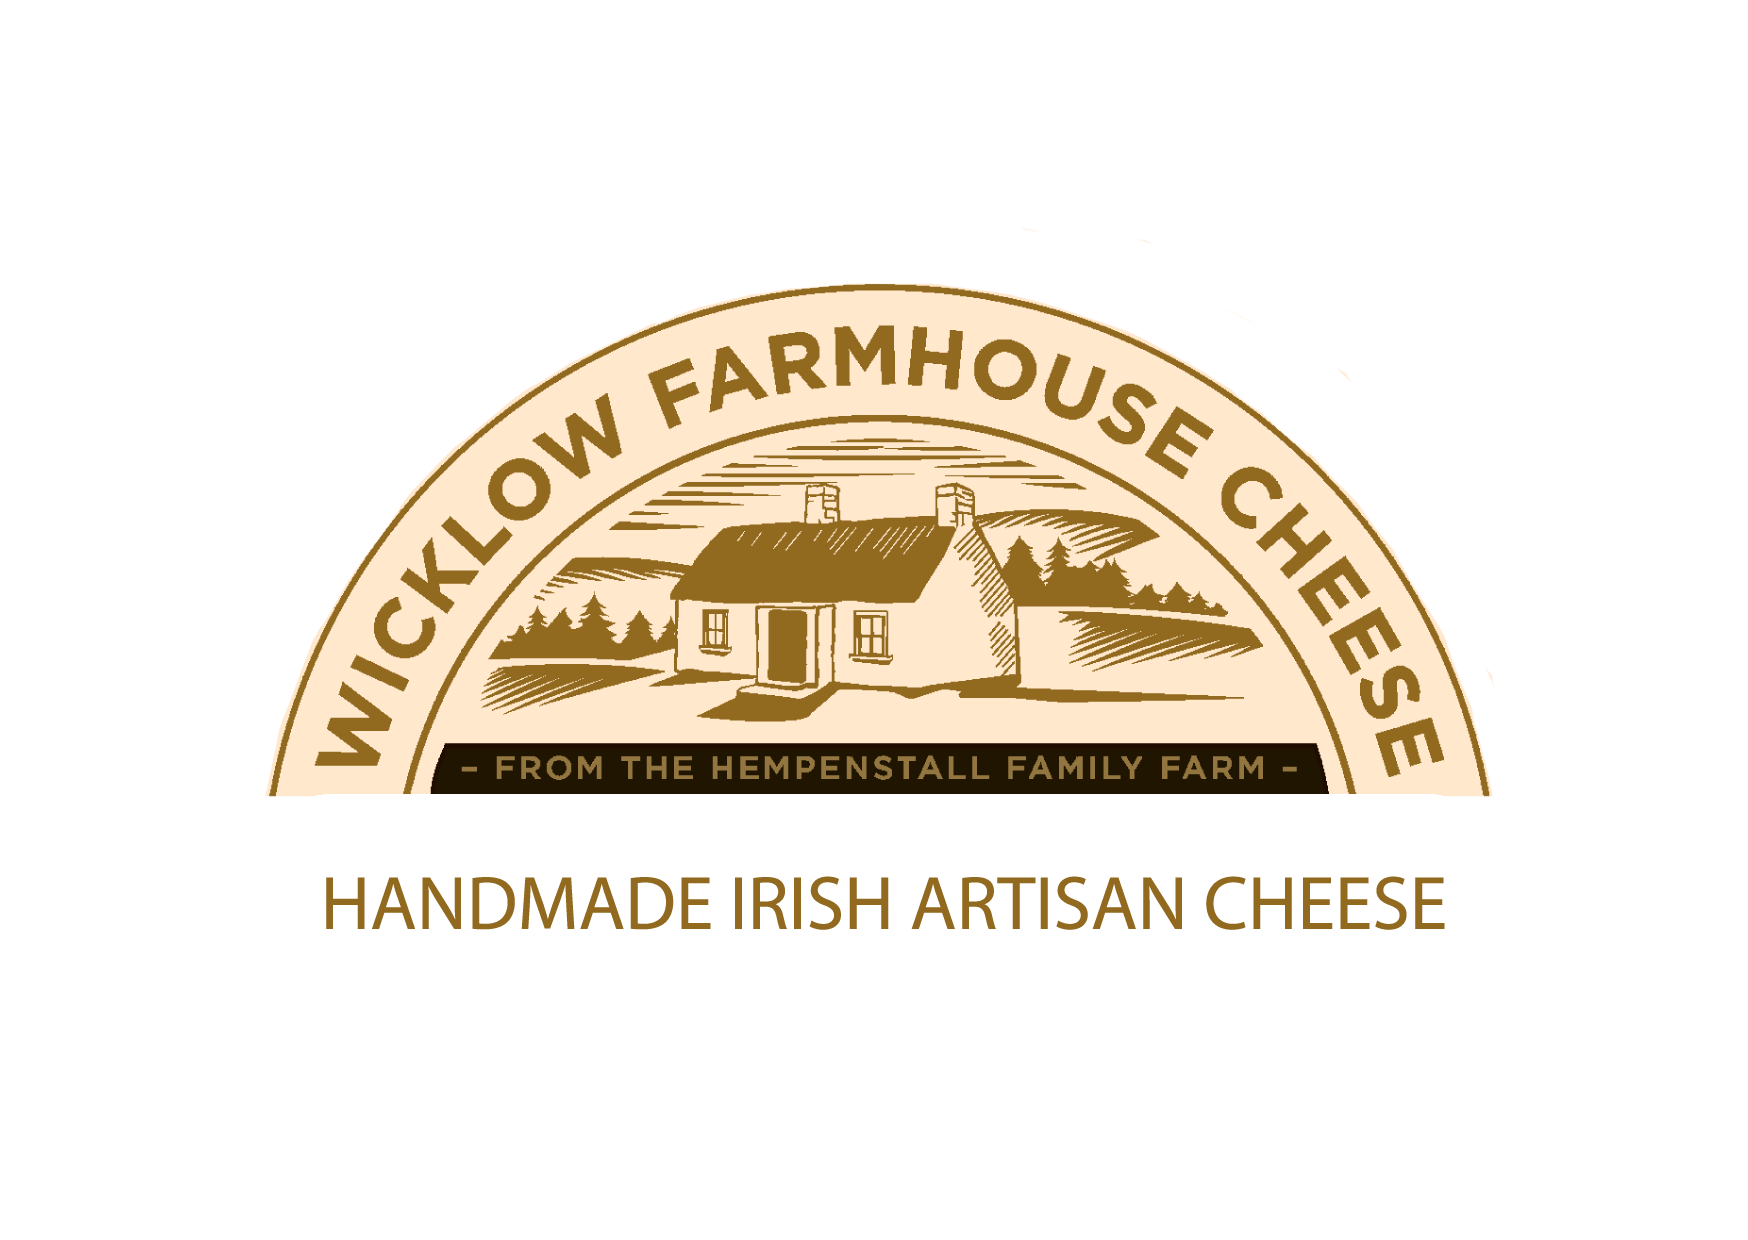 Image of Wicklow Farmhouse Cheese logotype